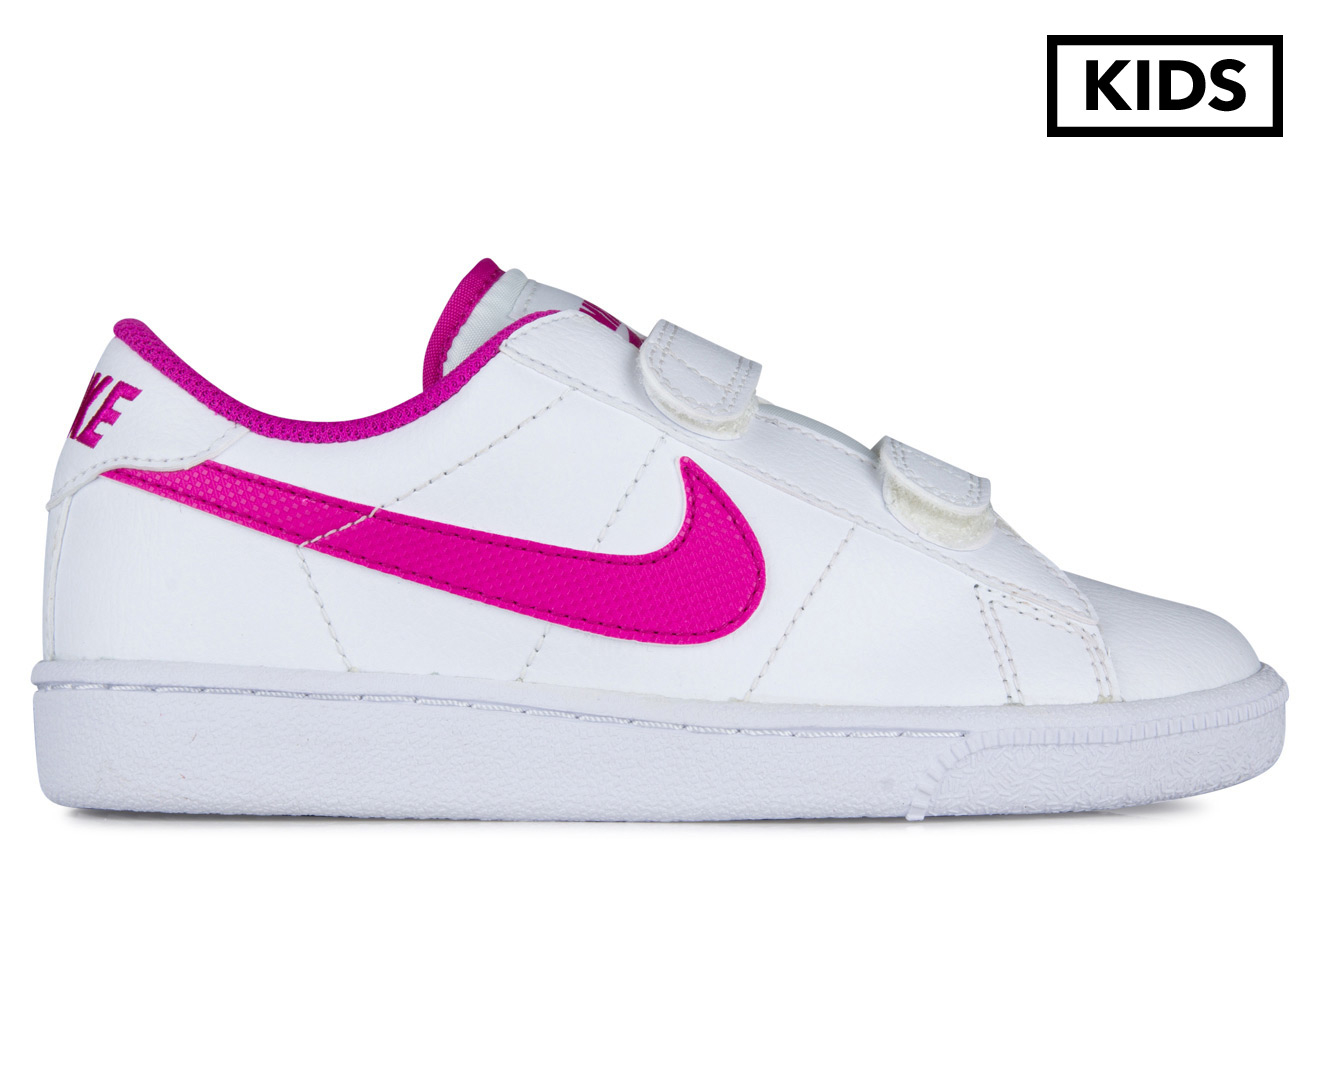 429868148ff3 Nike Pre-School Kids  Tennis Classic (PSV) Shoe - White Fuchsia Flash